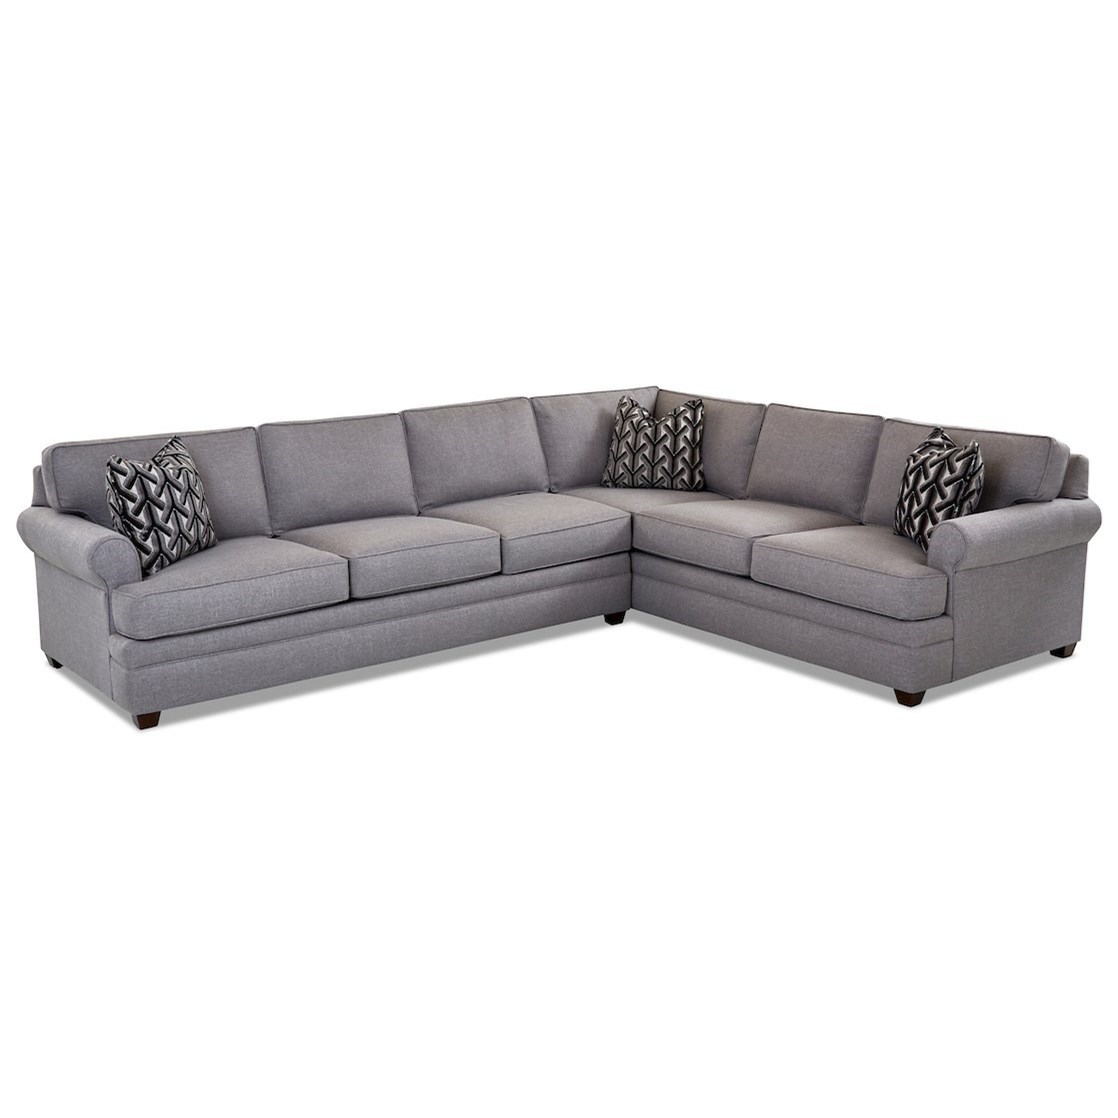 2-Piece Sectional Sofa w/ LAF Sofa